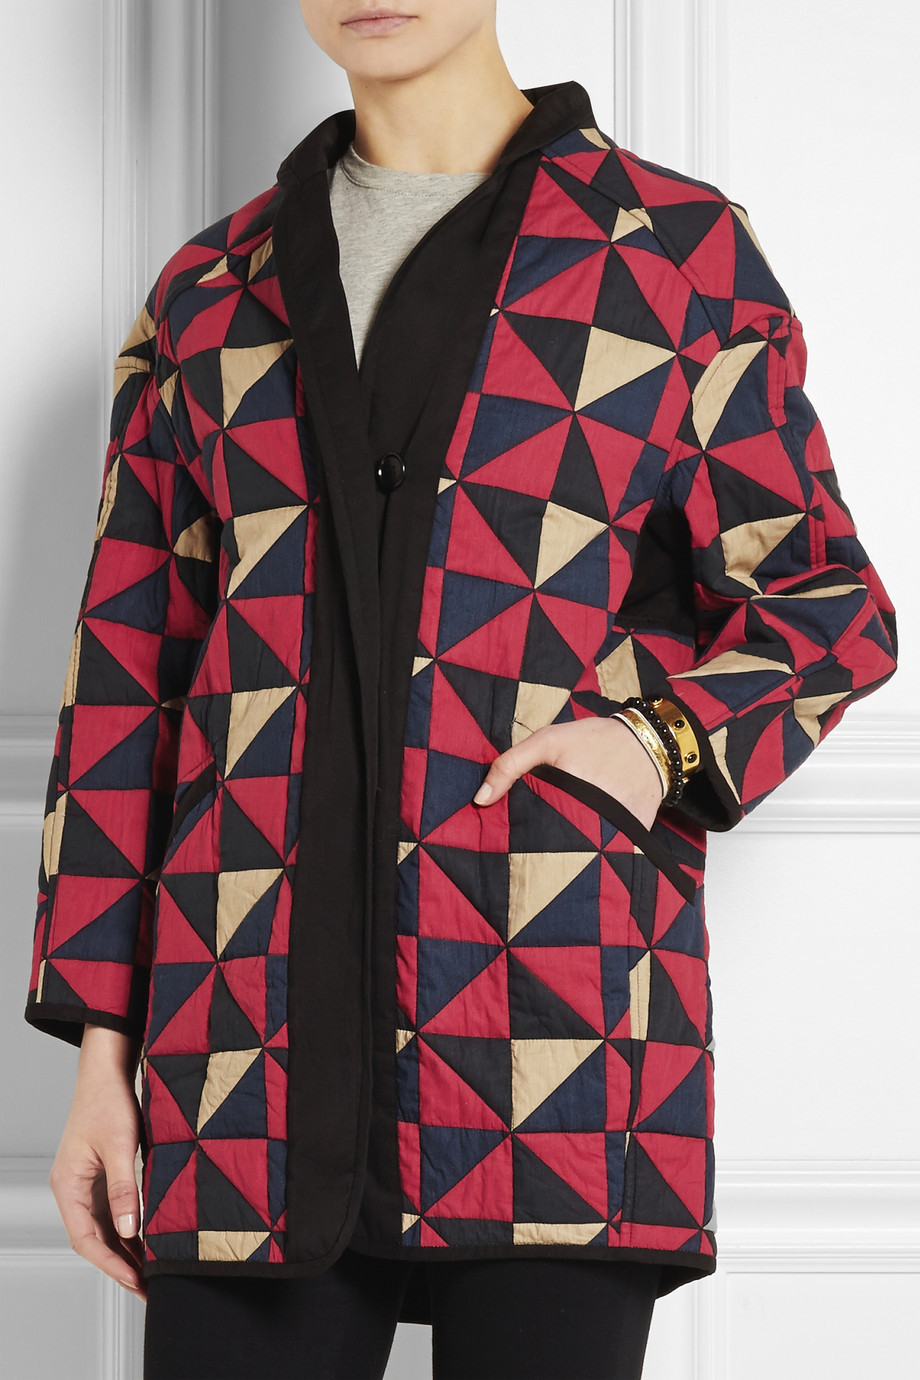 2015ss Enid Original Women Colorful triangles patchwork Reversible Padded Coat Quilted Parkas Jacket Pocket сумка reversible belt 2015